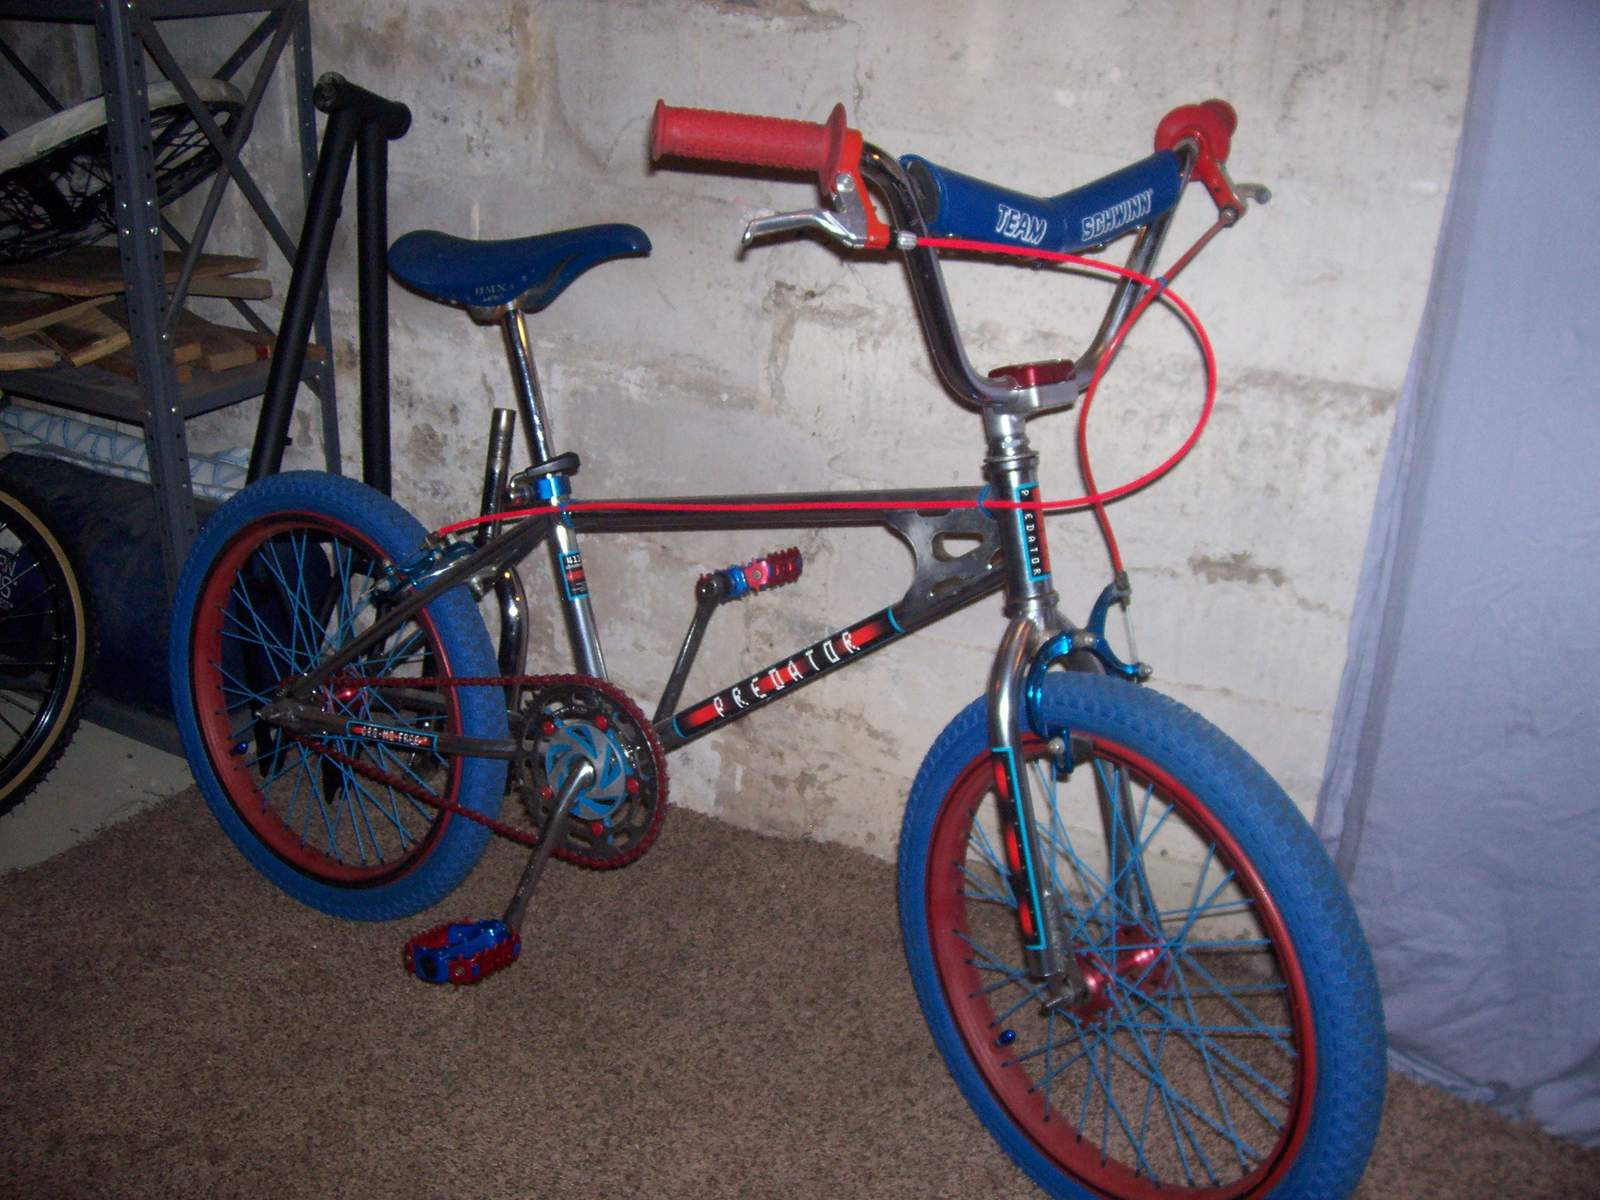 https://s3.amazonaws.com/uploads.bmxmuseum.com/user-images/61851/100_957759a3ac08c3.jpg